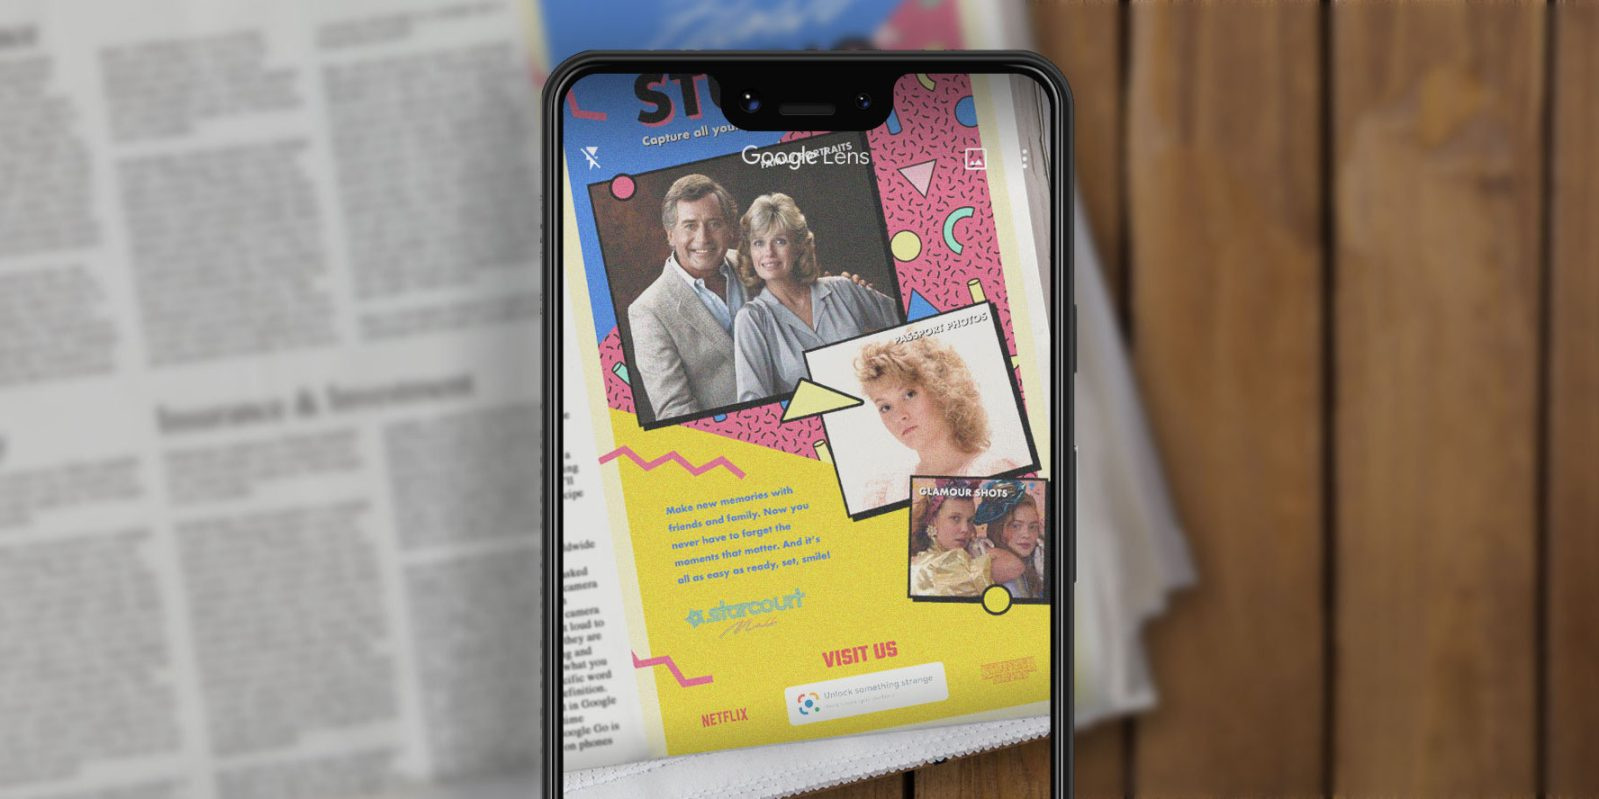 Image Media for Google Lens: Stranger Things Ads